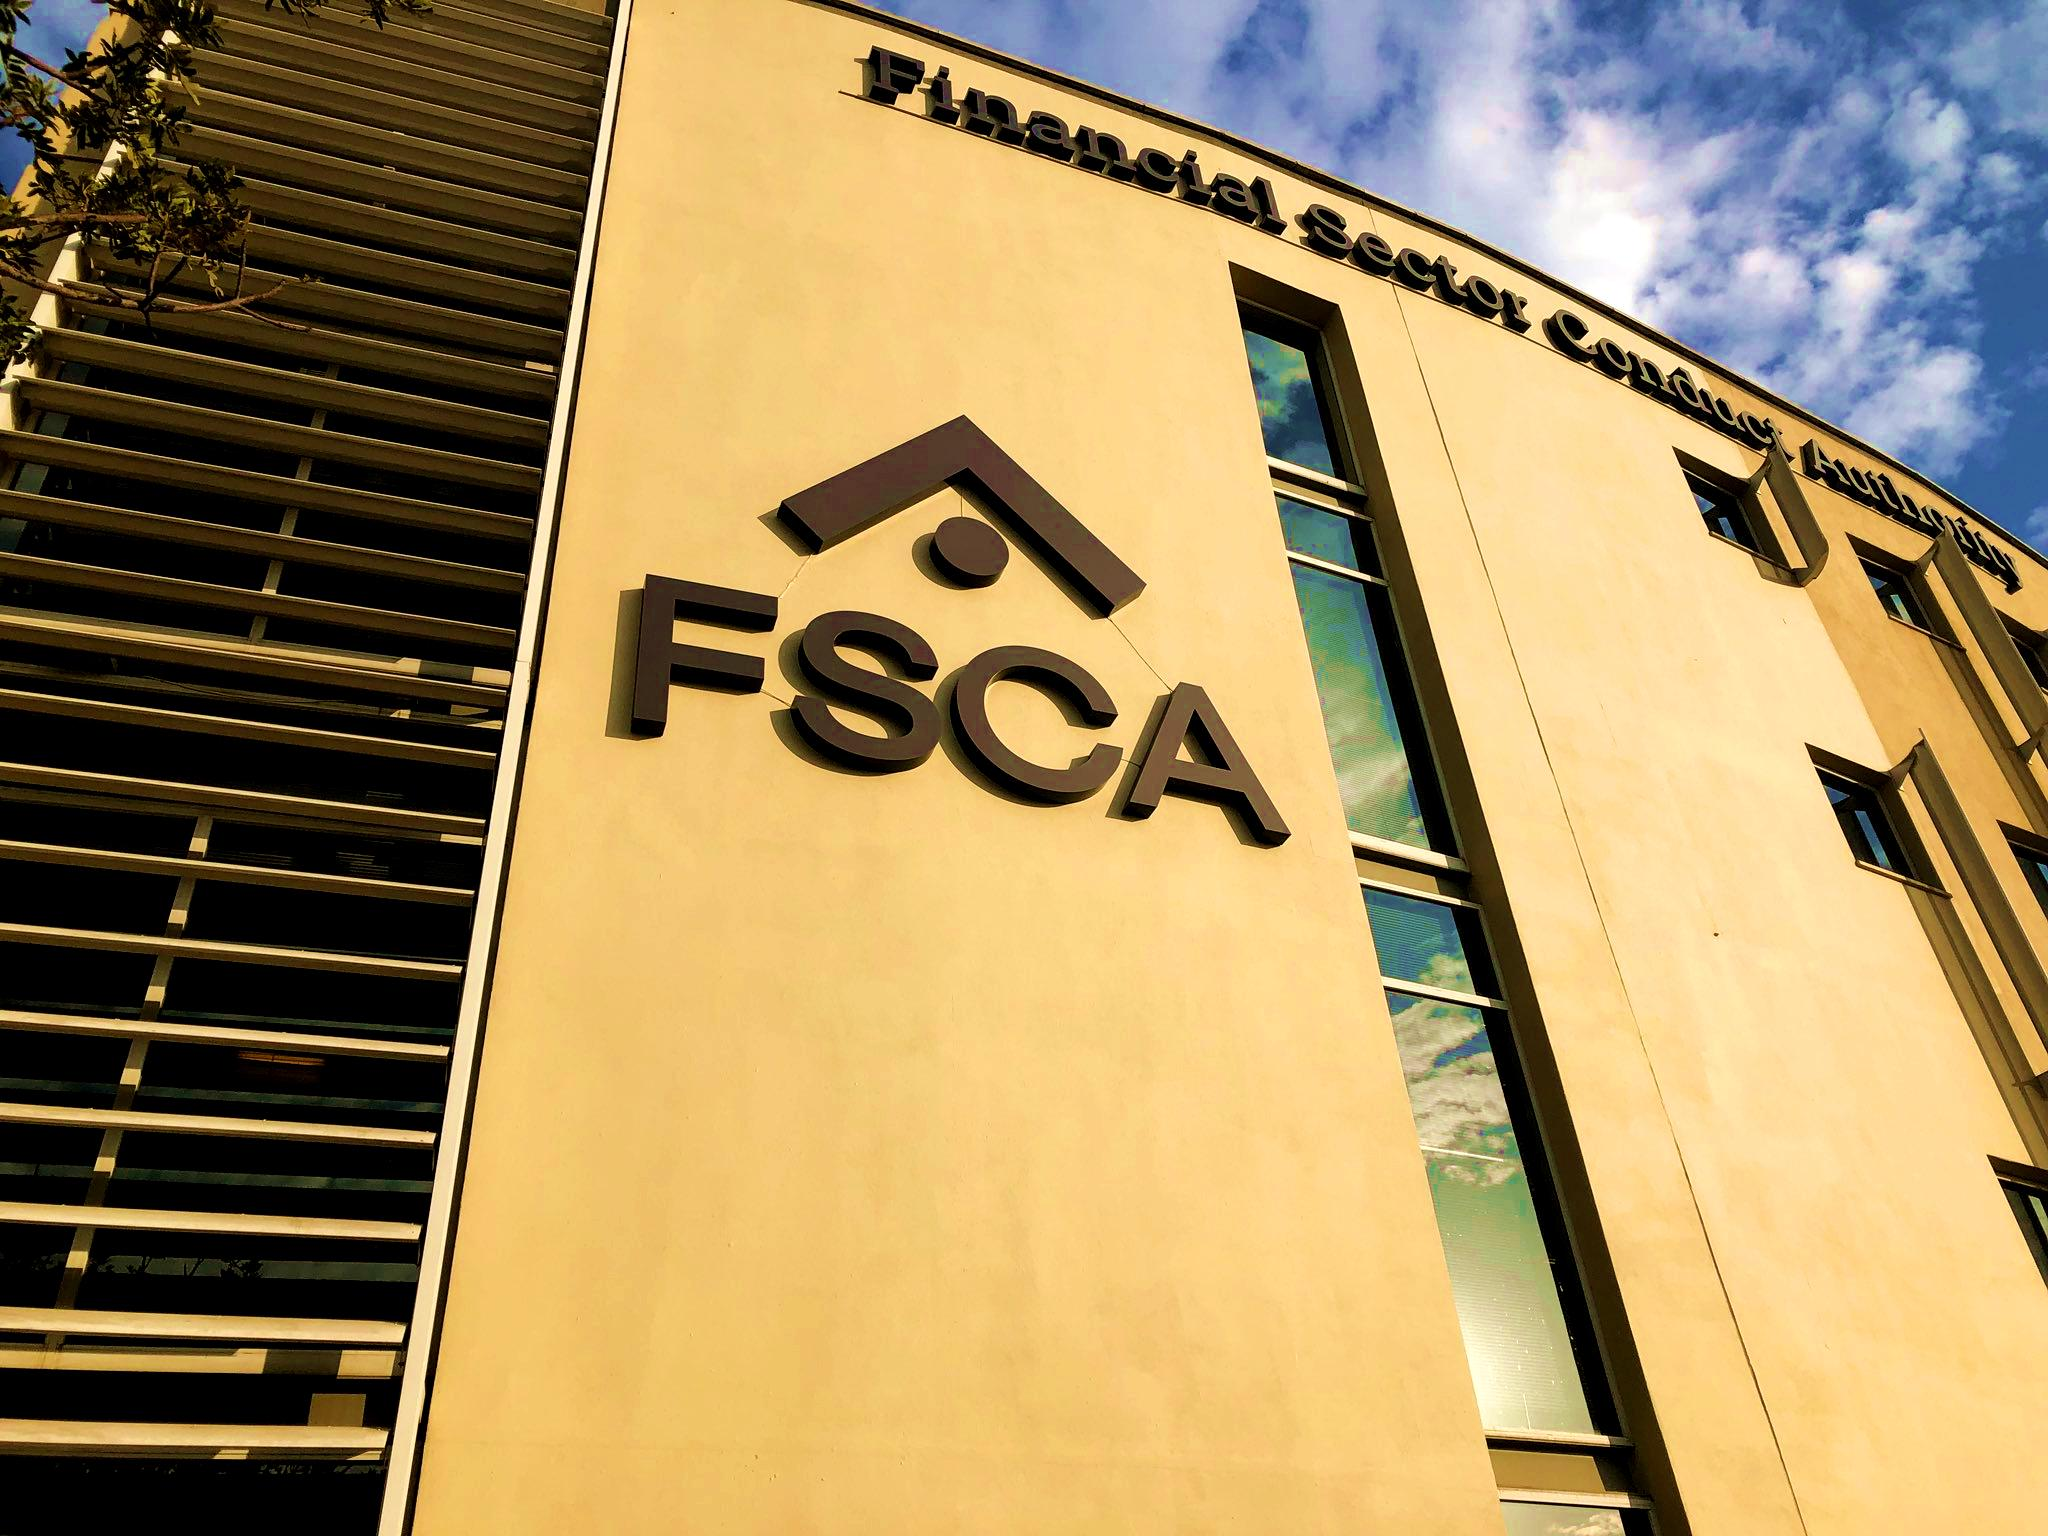 South African Regulator, FSCA, Wants Tighter Regulation for Trading Cryptocurrencies, Says a Bloomberg Report